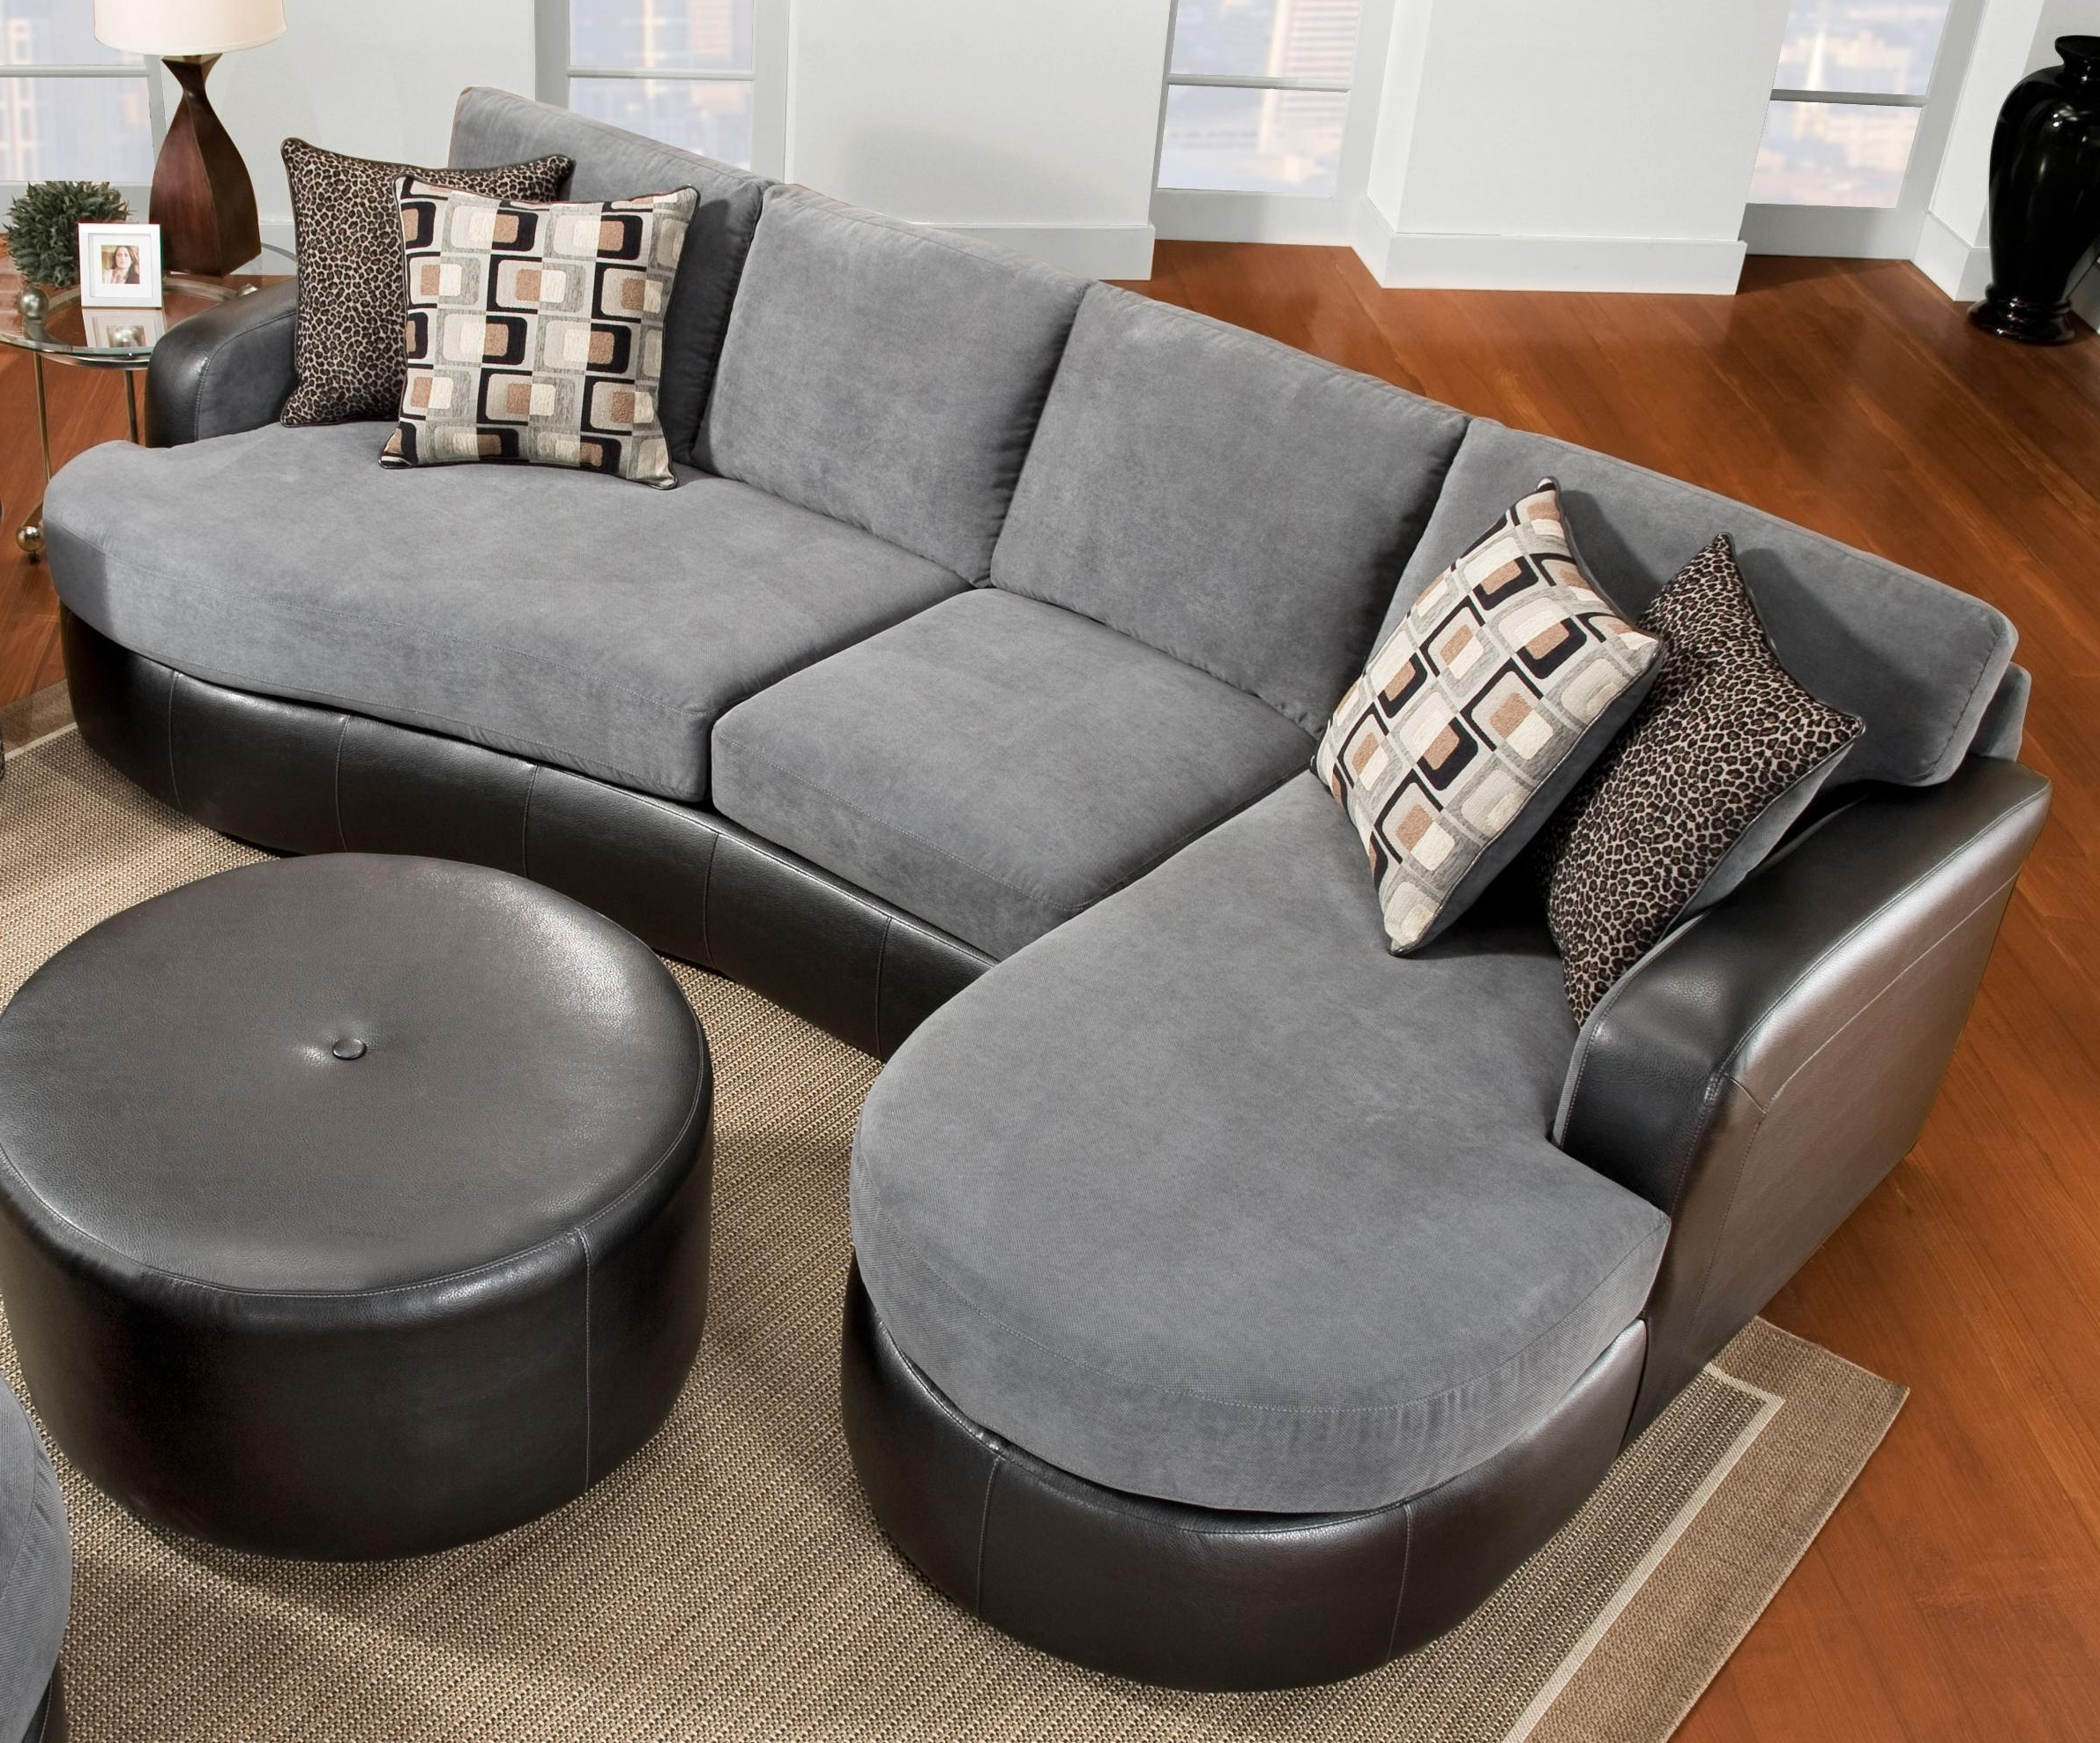 Latest Leather Sectionals With Chaise And Ottoman With Home Design : Dazzling Best Modern Fabric Sectional Sofas With (View 3 of 20)